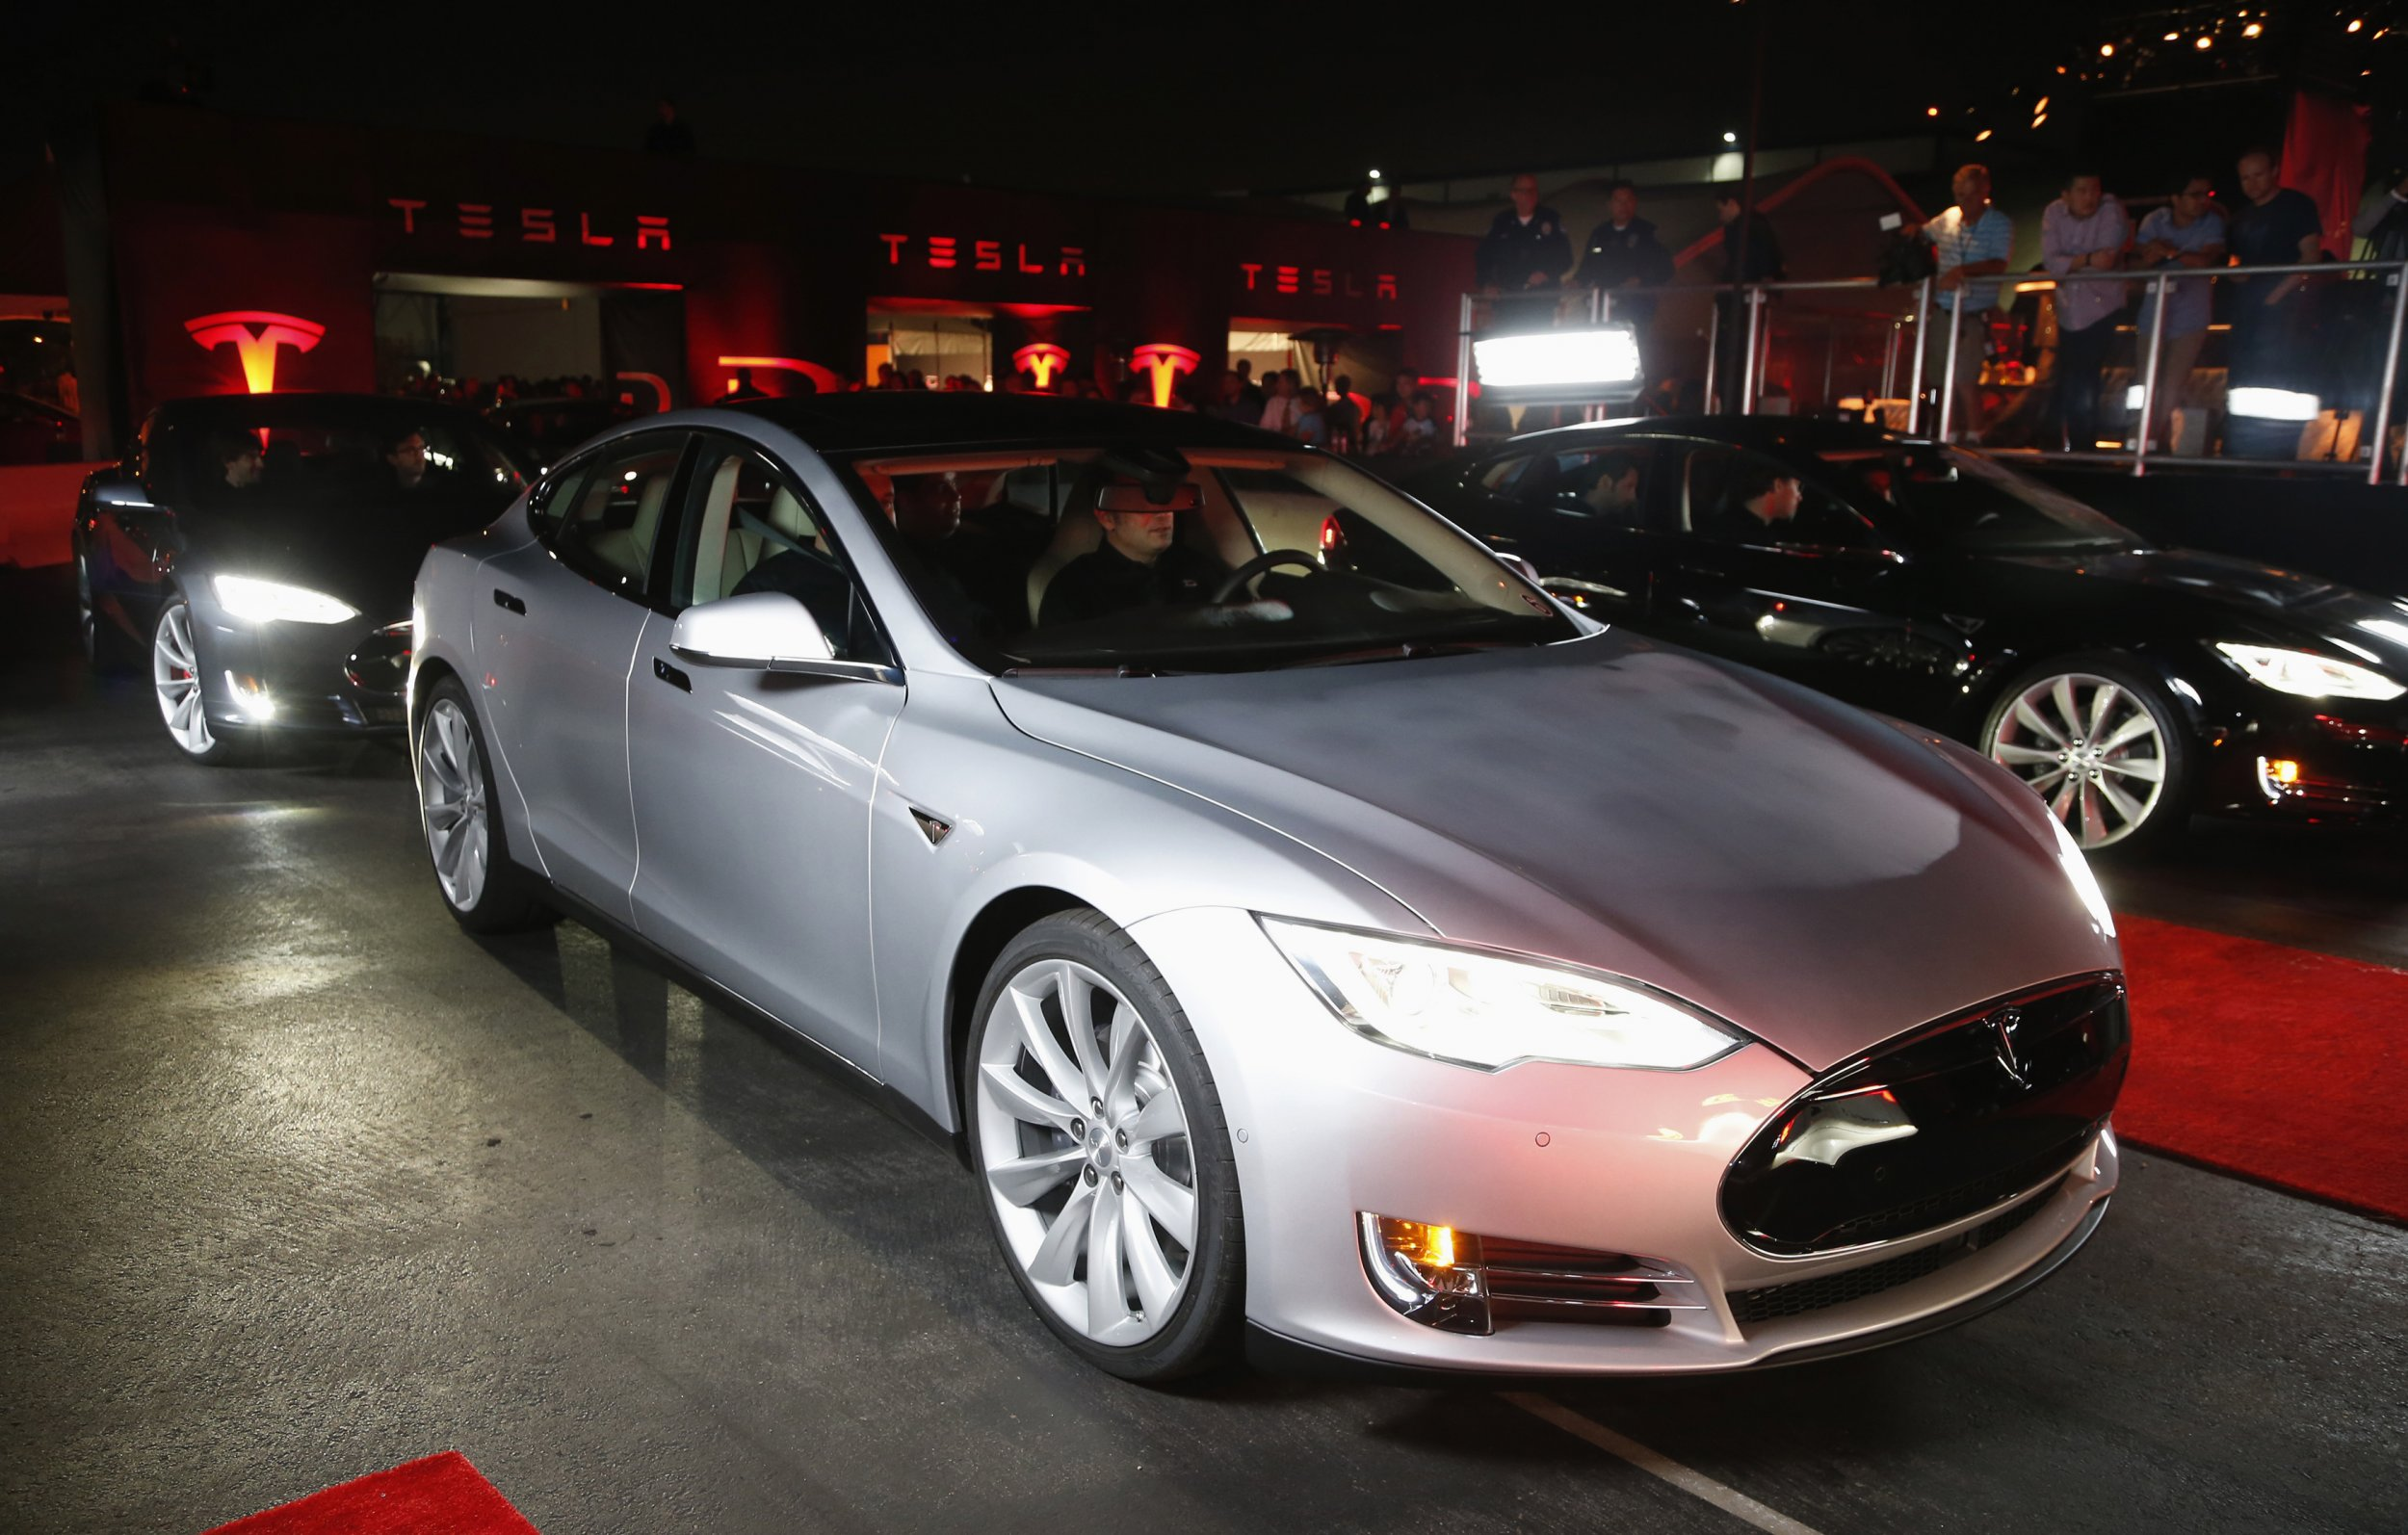 Tesla unveils ultra-fast Luuudicrous Mode